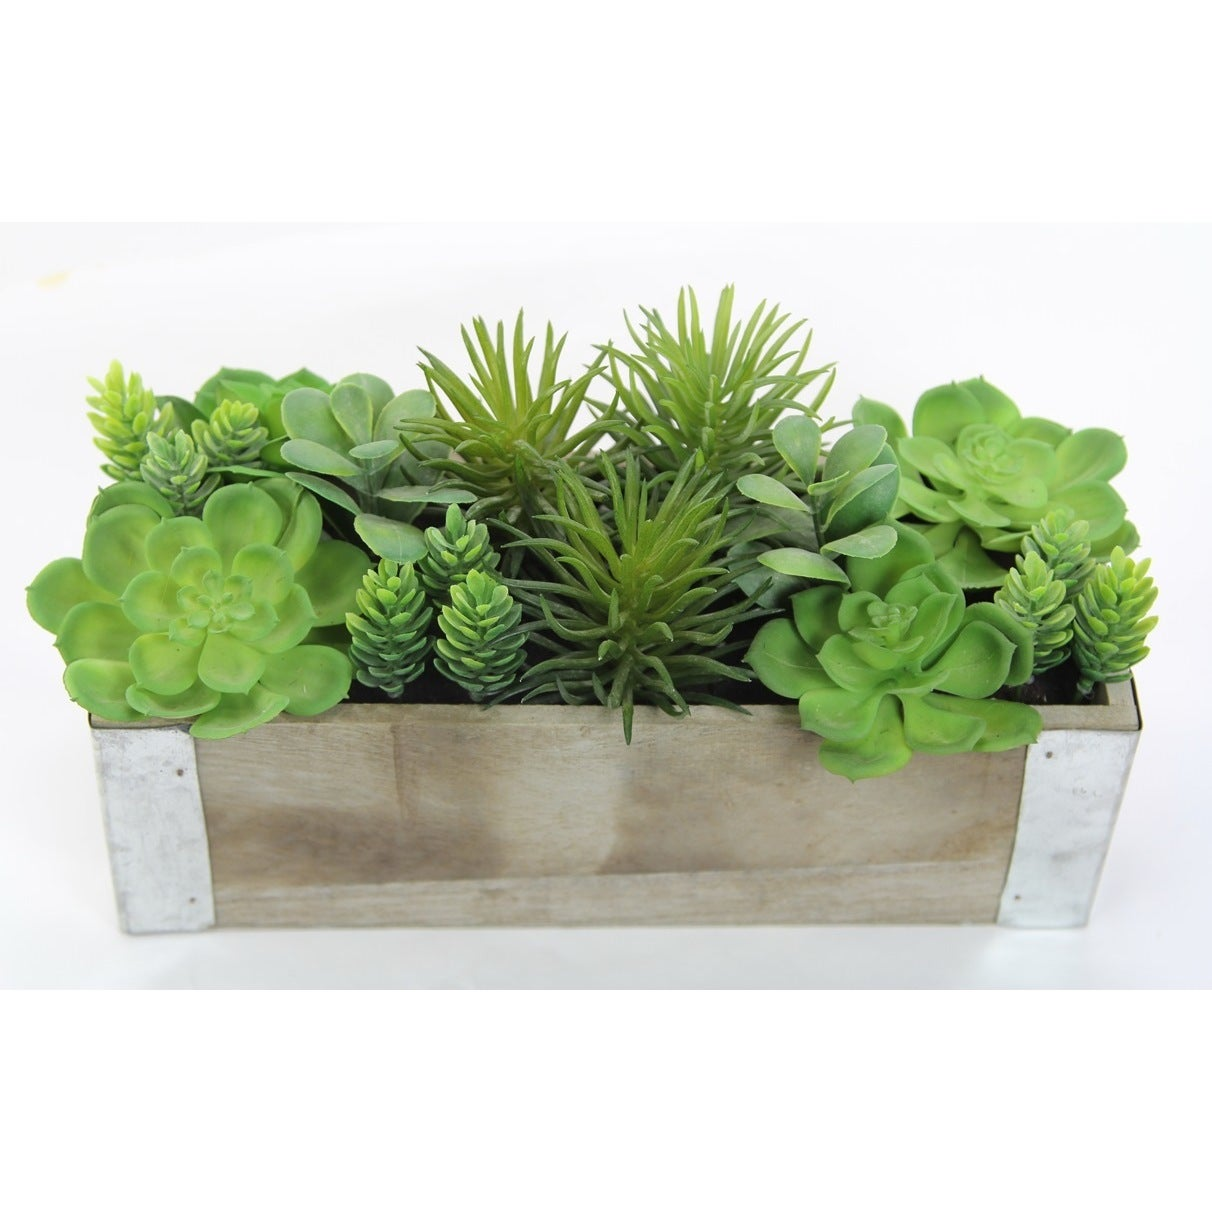 Shop Artificial Desktop Potted Mixed Succulents Plants With Love Decorative Rectangular Wood Planter Green For Home Office Decor